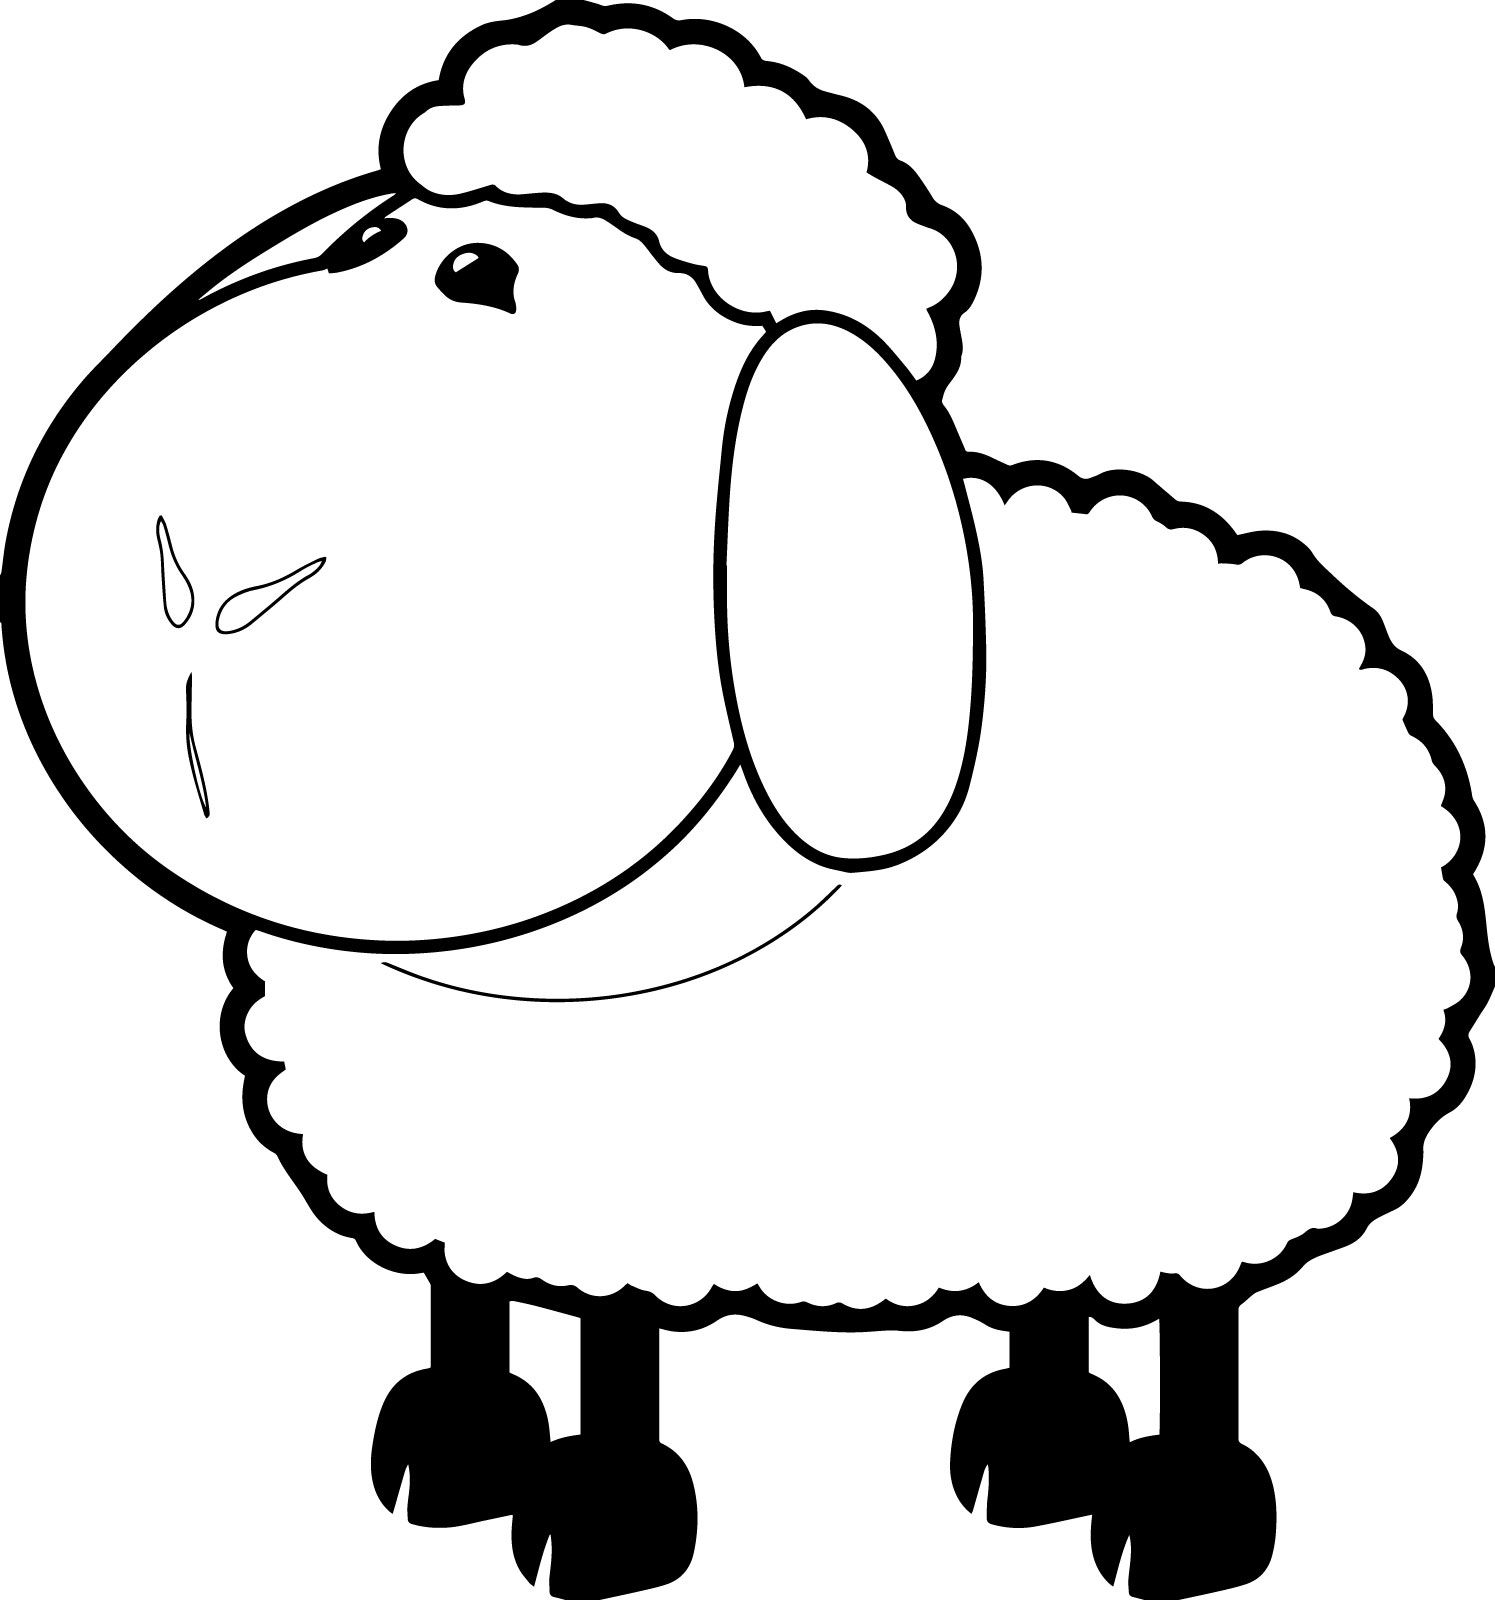 Cool Sheep Coloring Pages Easter Images Clip Art Sheep Face